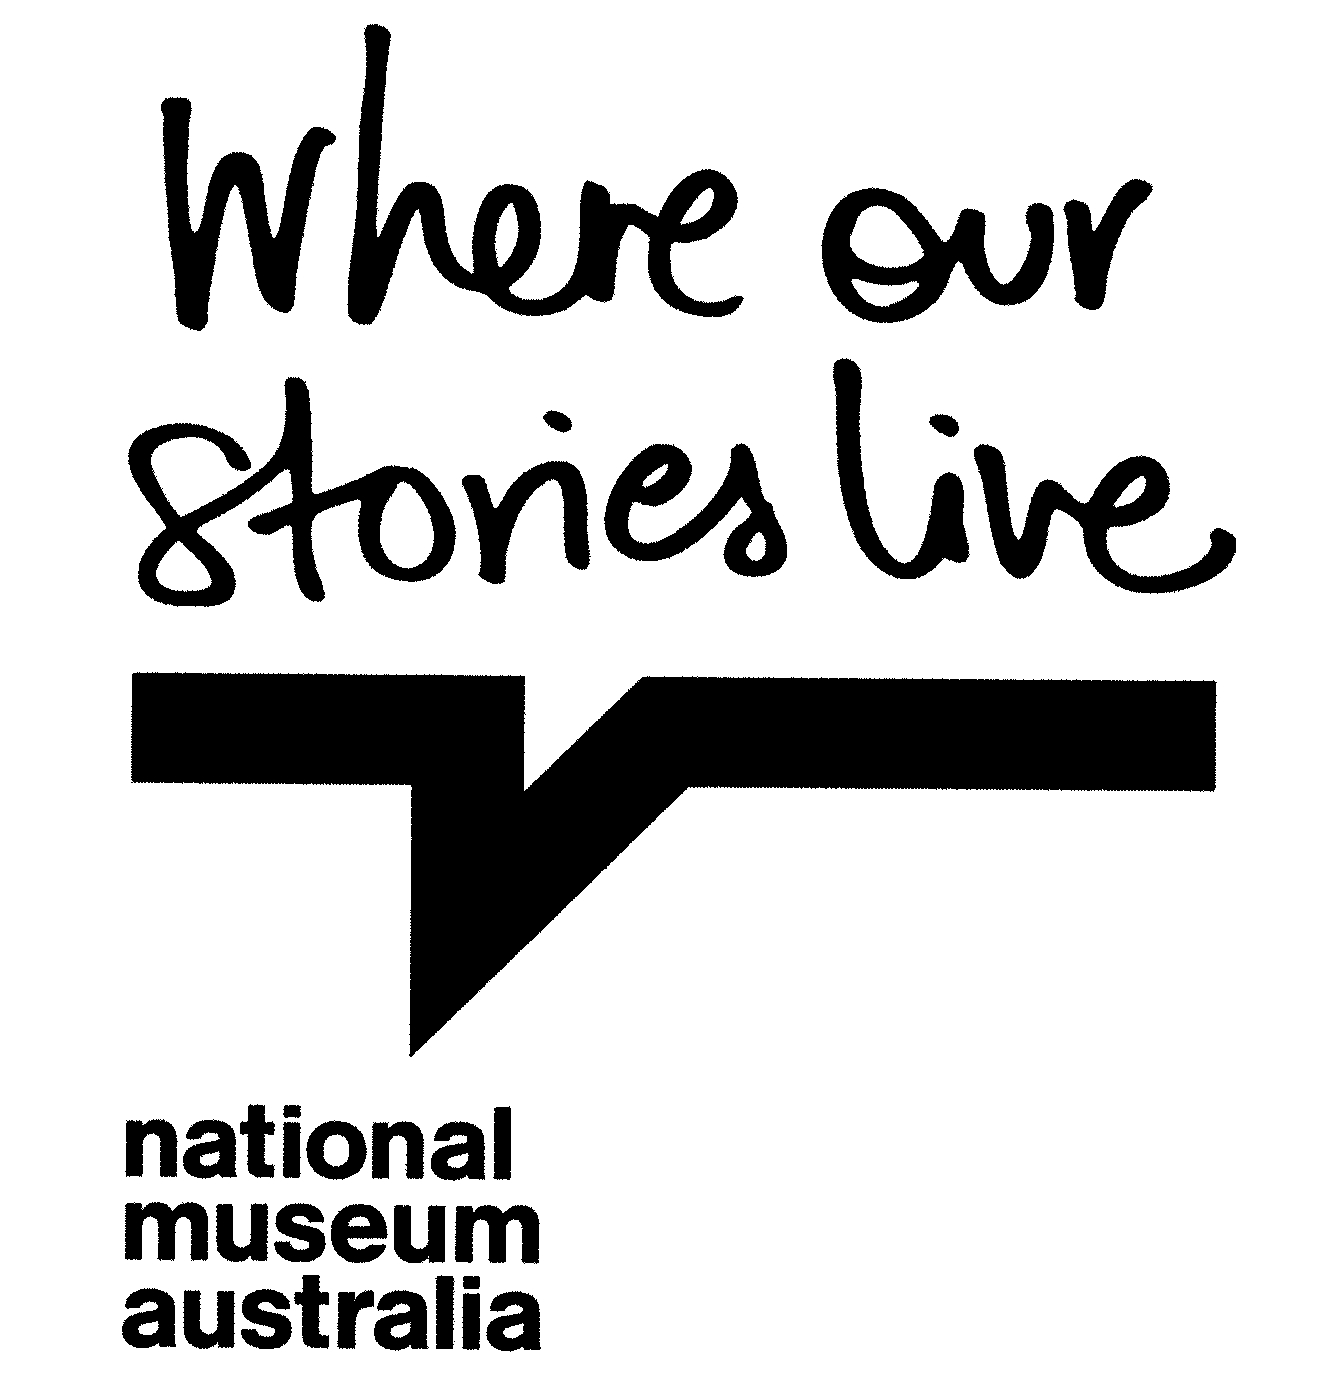 WHERE OUR STORIES LIVE NATIONAL MUSEUM AUSTRALIA by